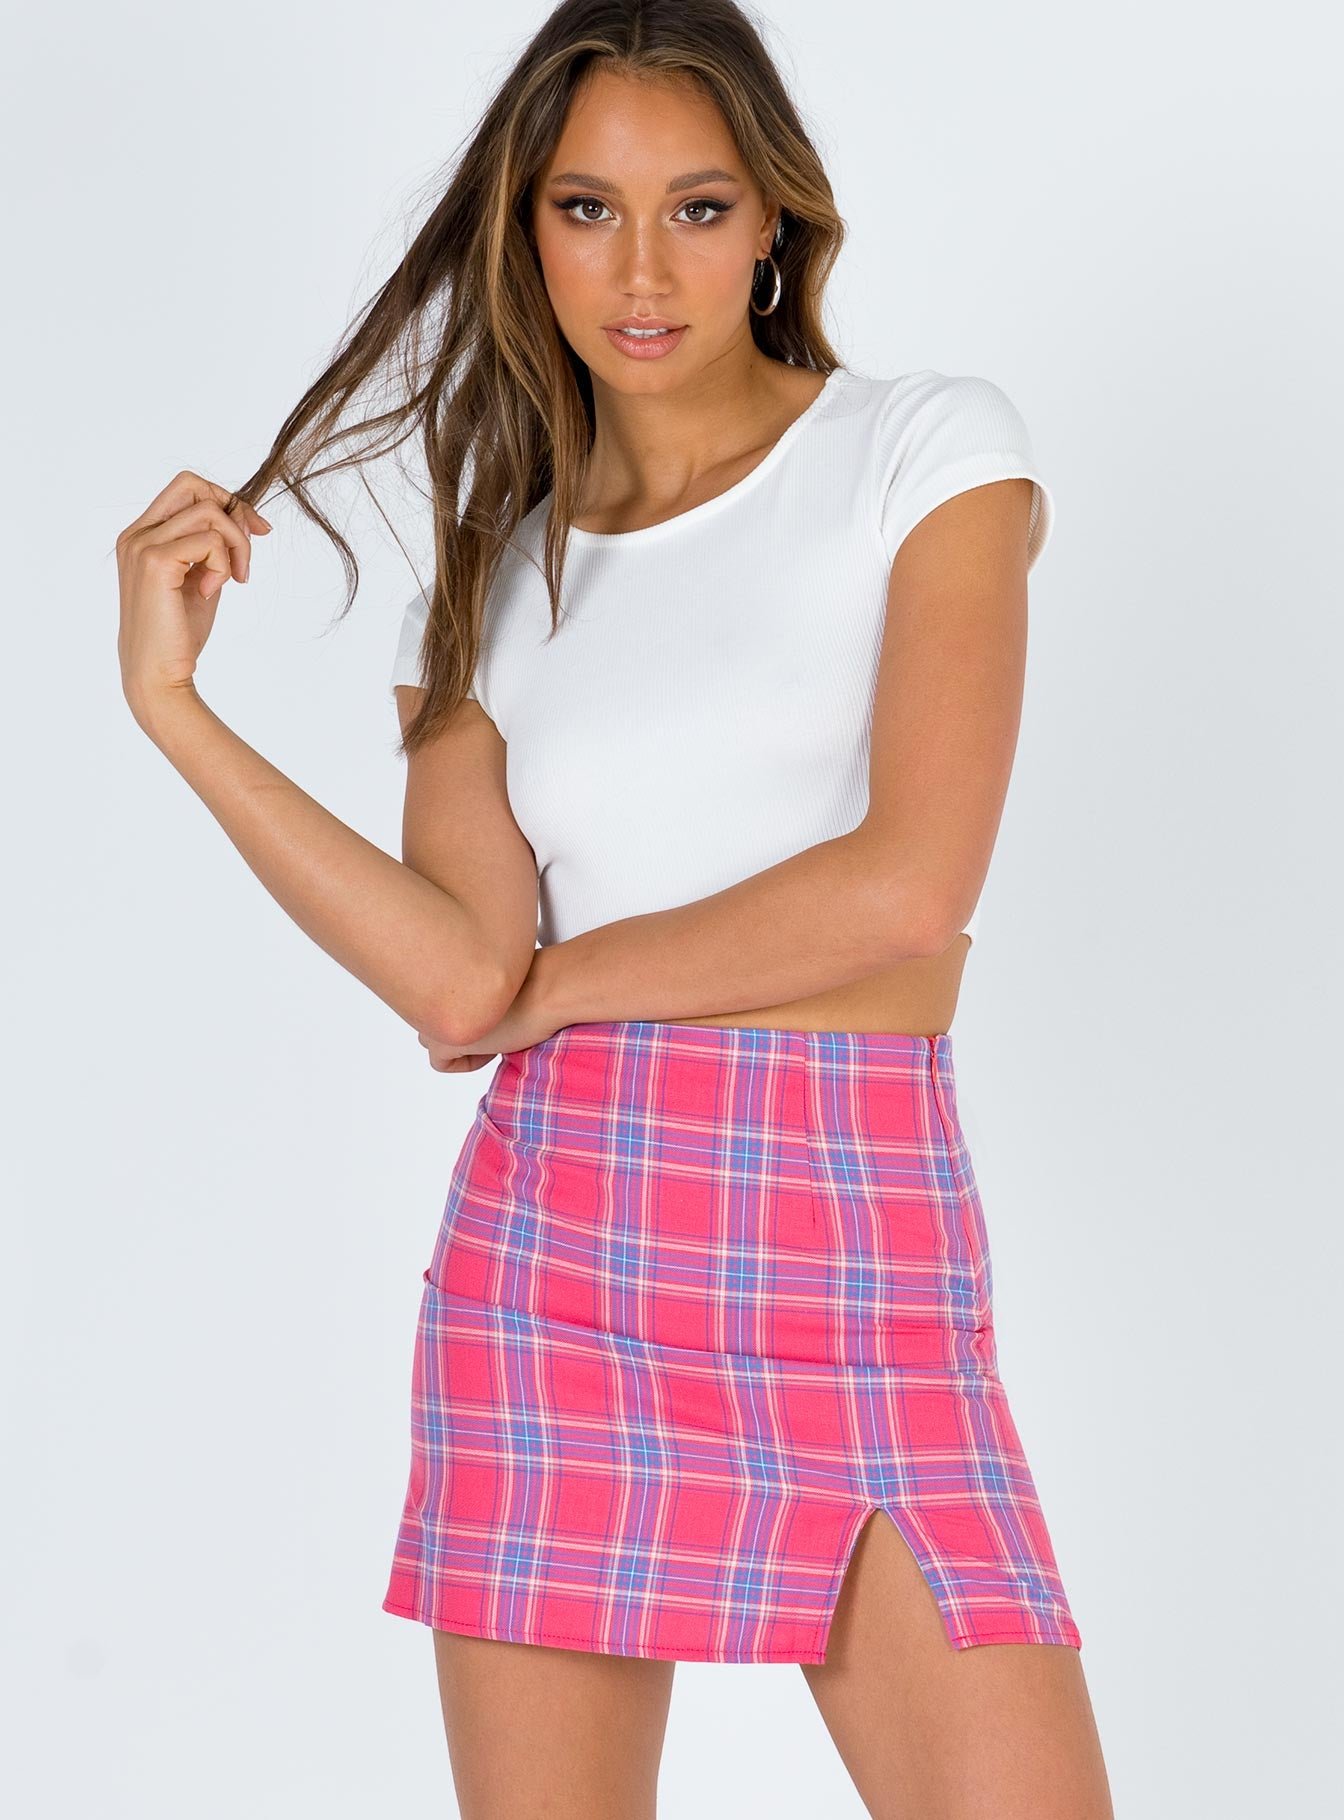 The Briggs Mini Skirt by Princess Polly